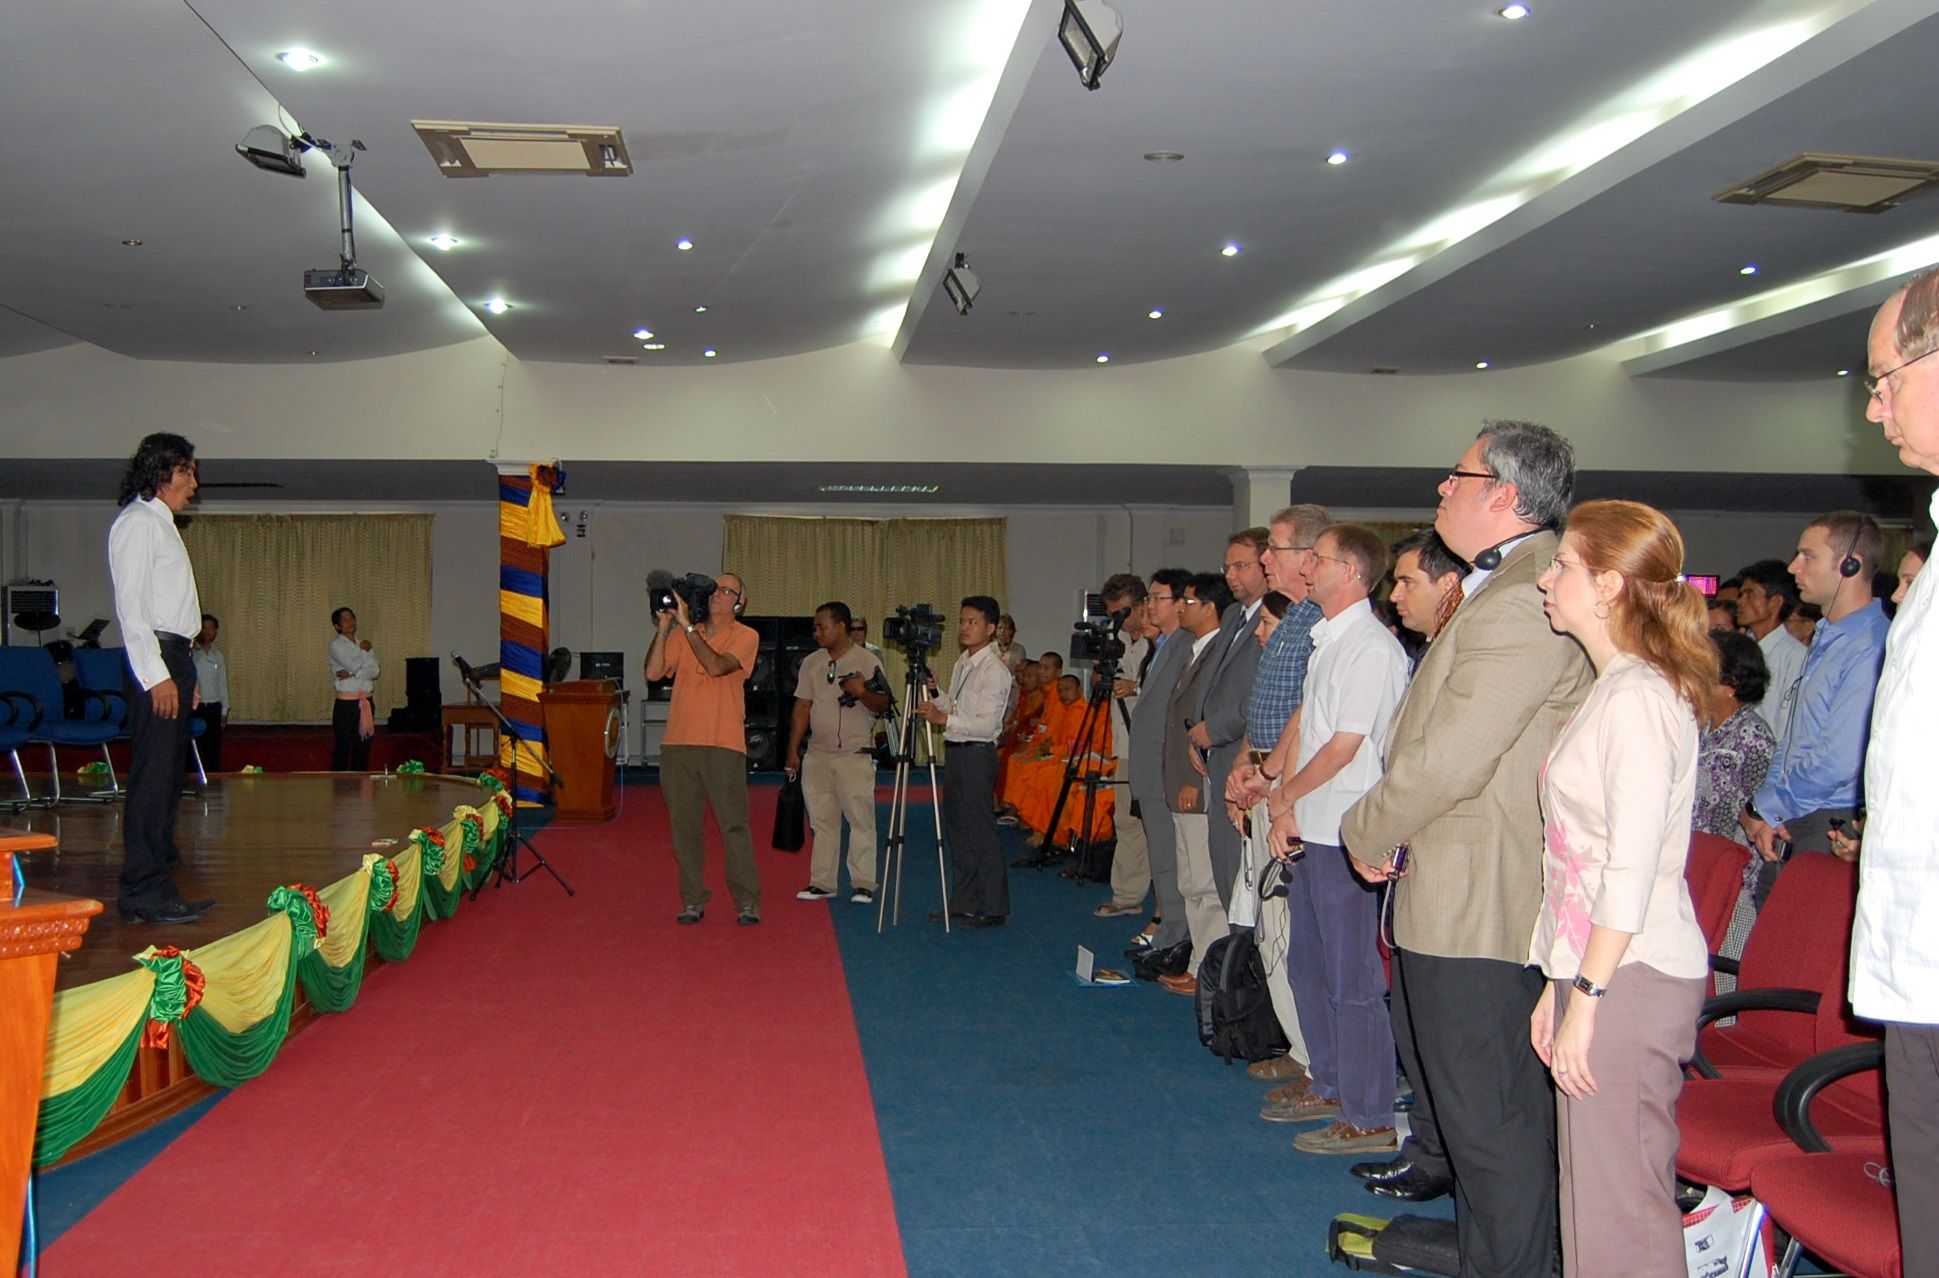 Tenor Khuon Sethisak singing the national anthem, CJR public forum, 23 July 2010